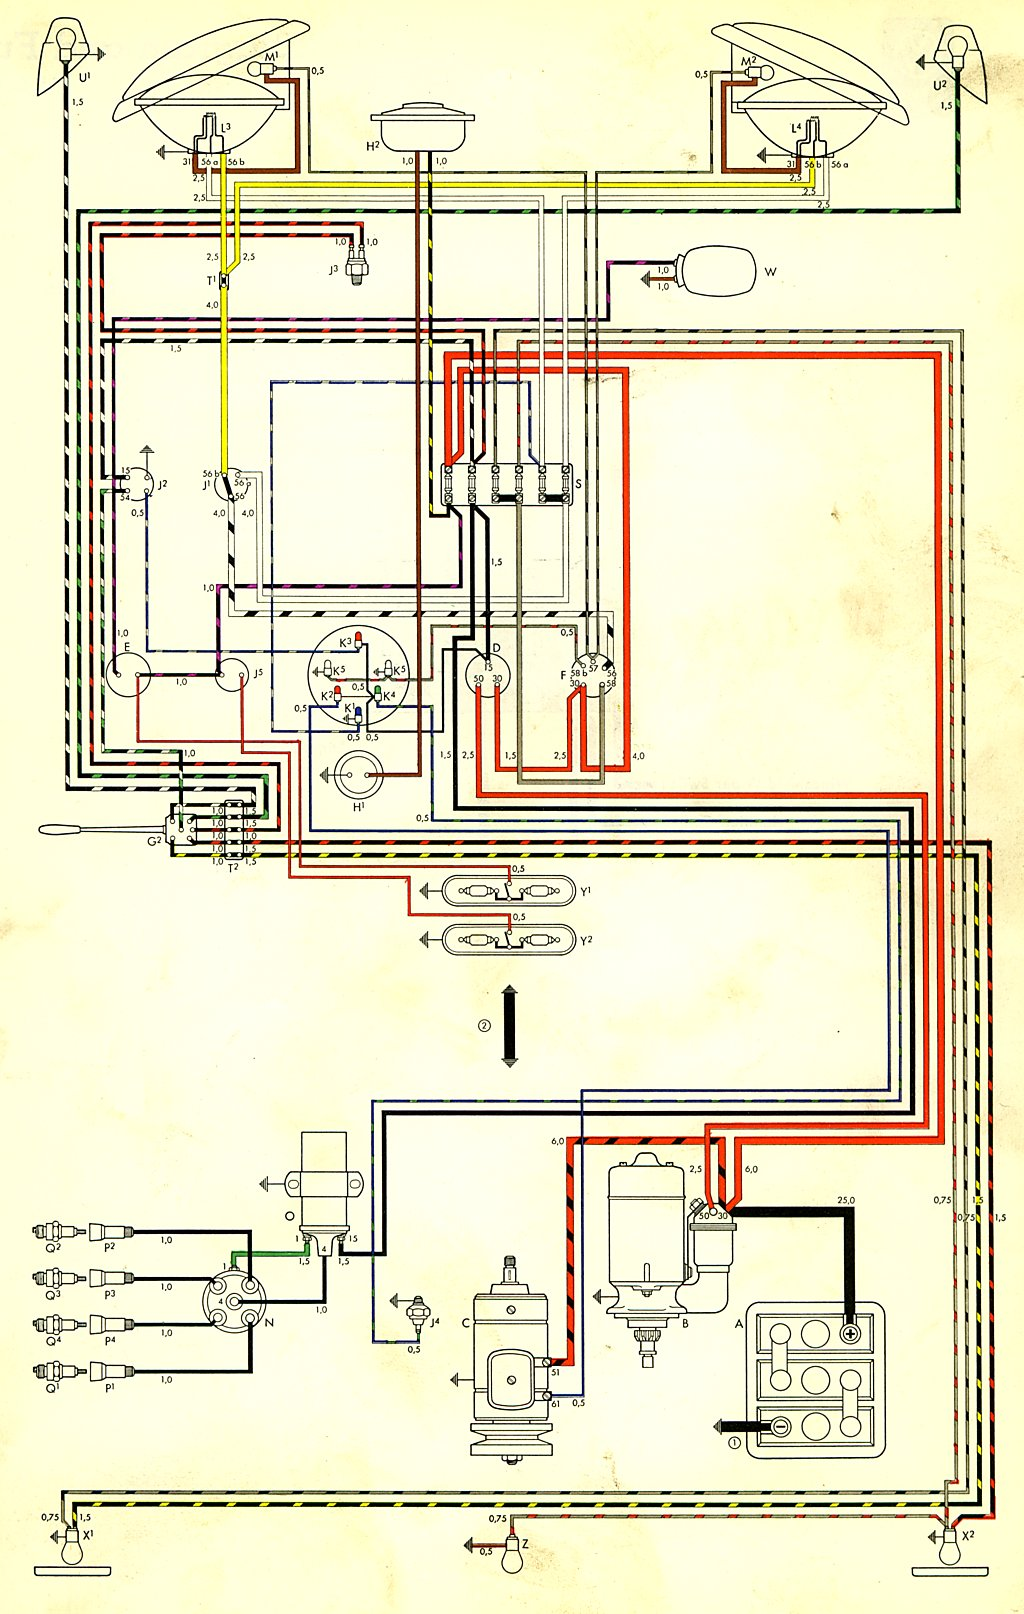 Corvette Wiper Wiring Diagram 1963 Windshield Vehicle Electrical Center Inlinegif 16381 Bytes 1969 Rh Banyan Palace Com